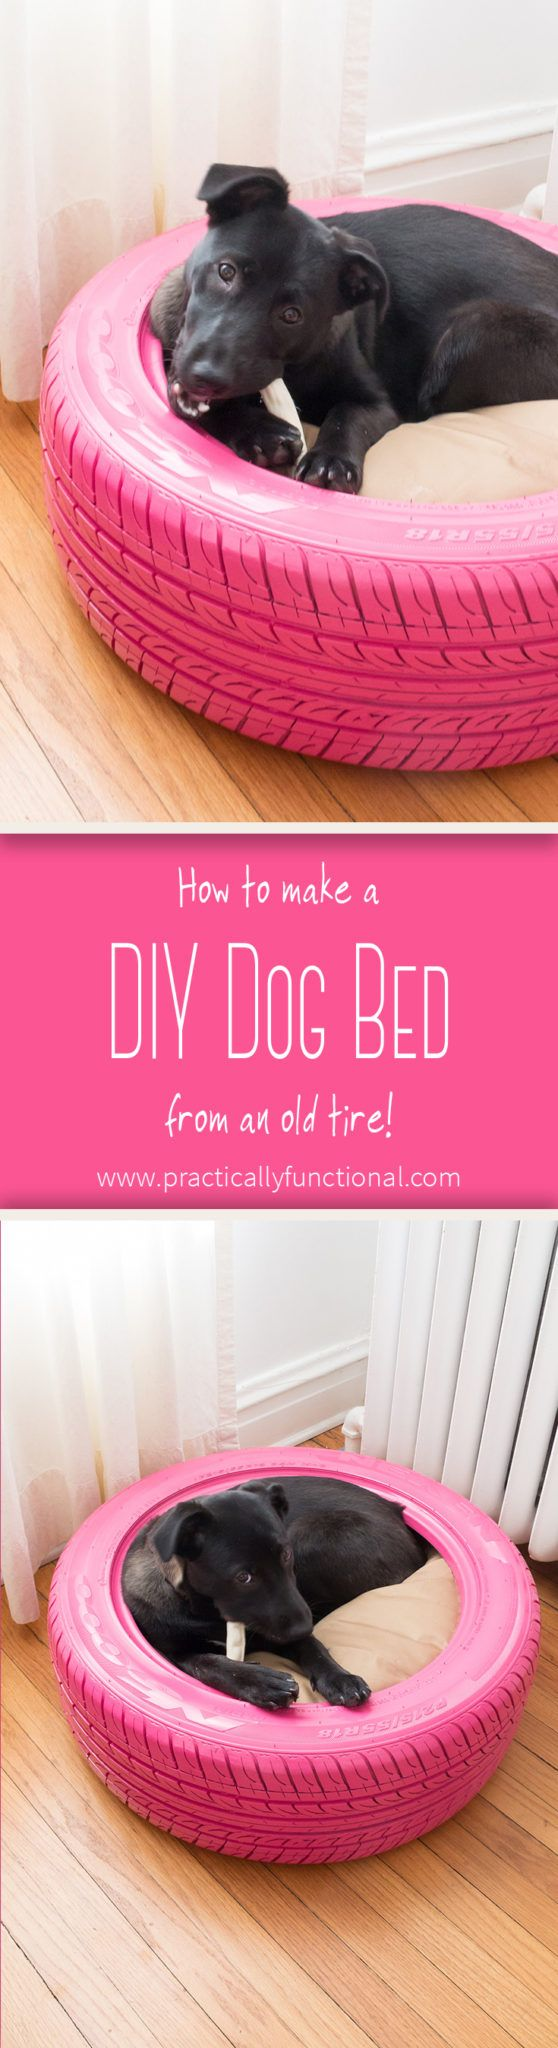 Turn an old tire into a DIY dog bed: It's quick and easy to do, and a great way to recycle an old tire! All you need is spray paint and a round bed!